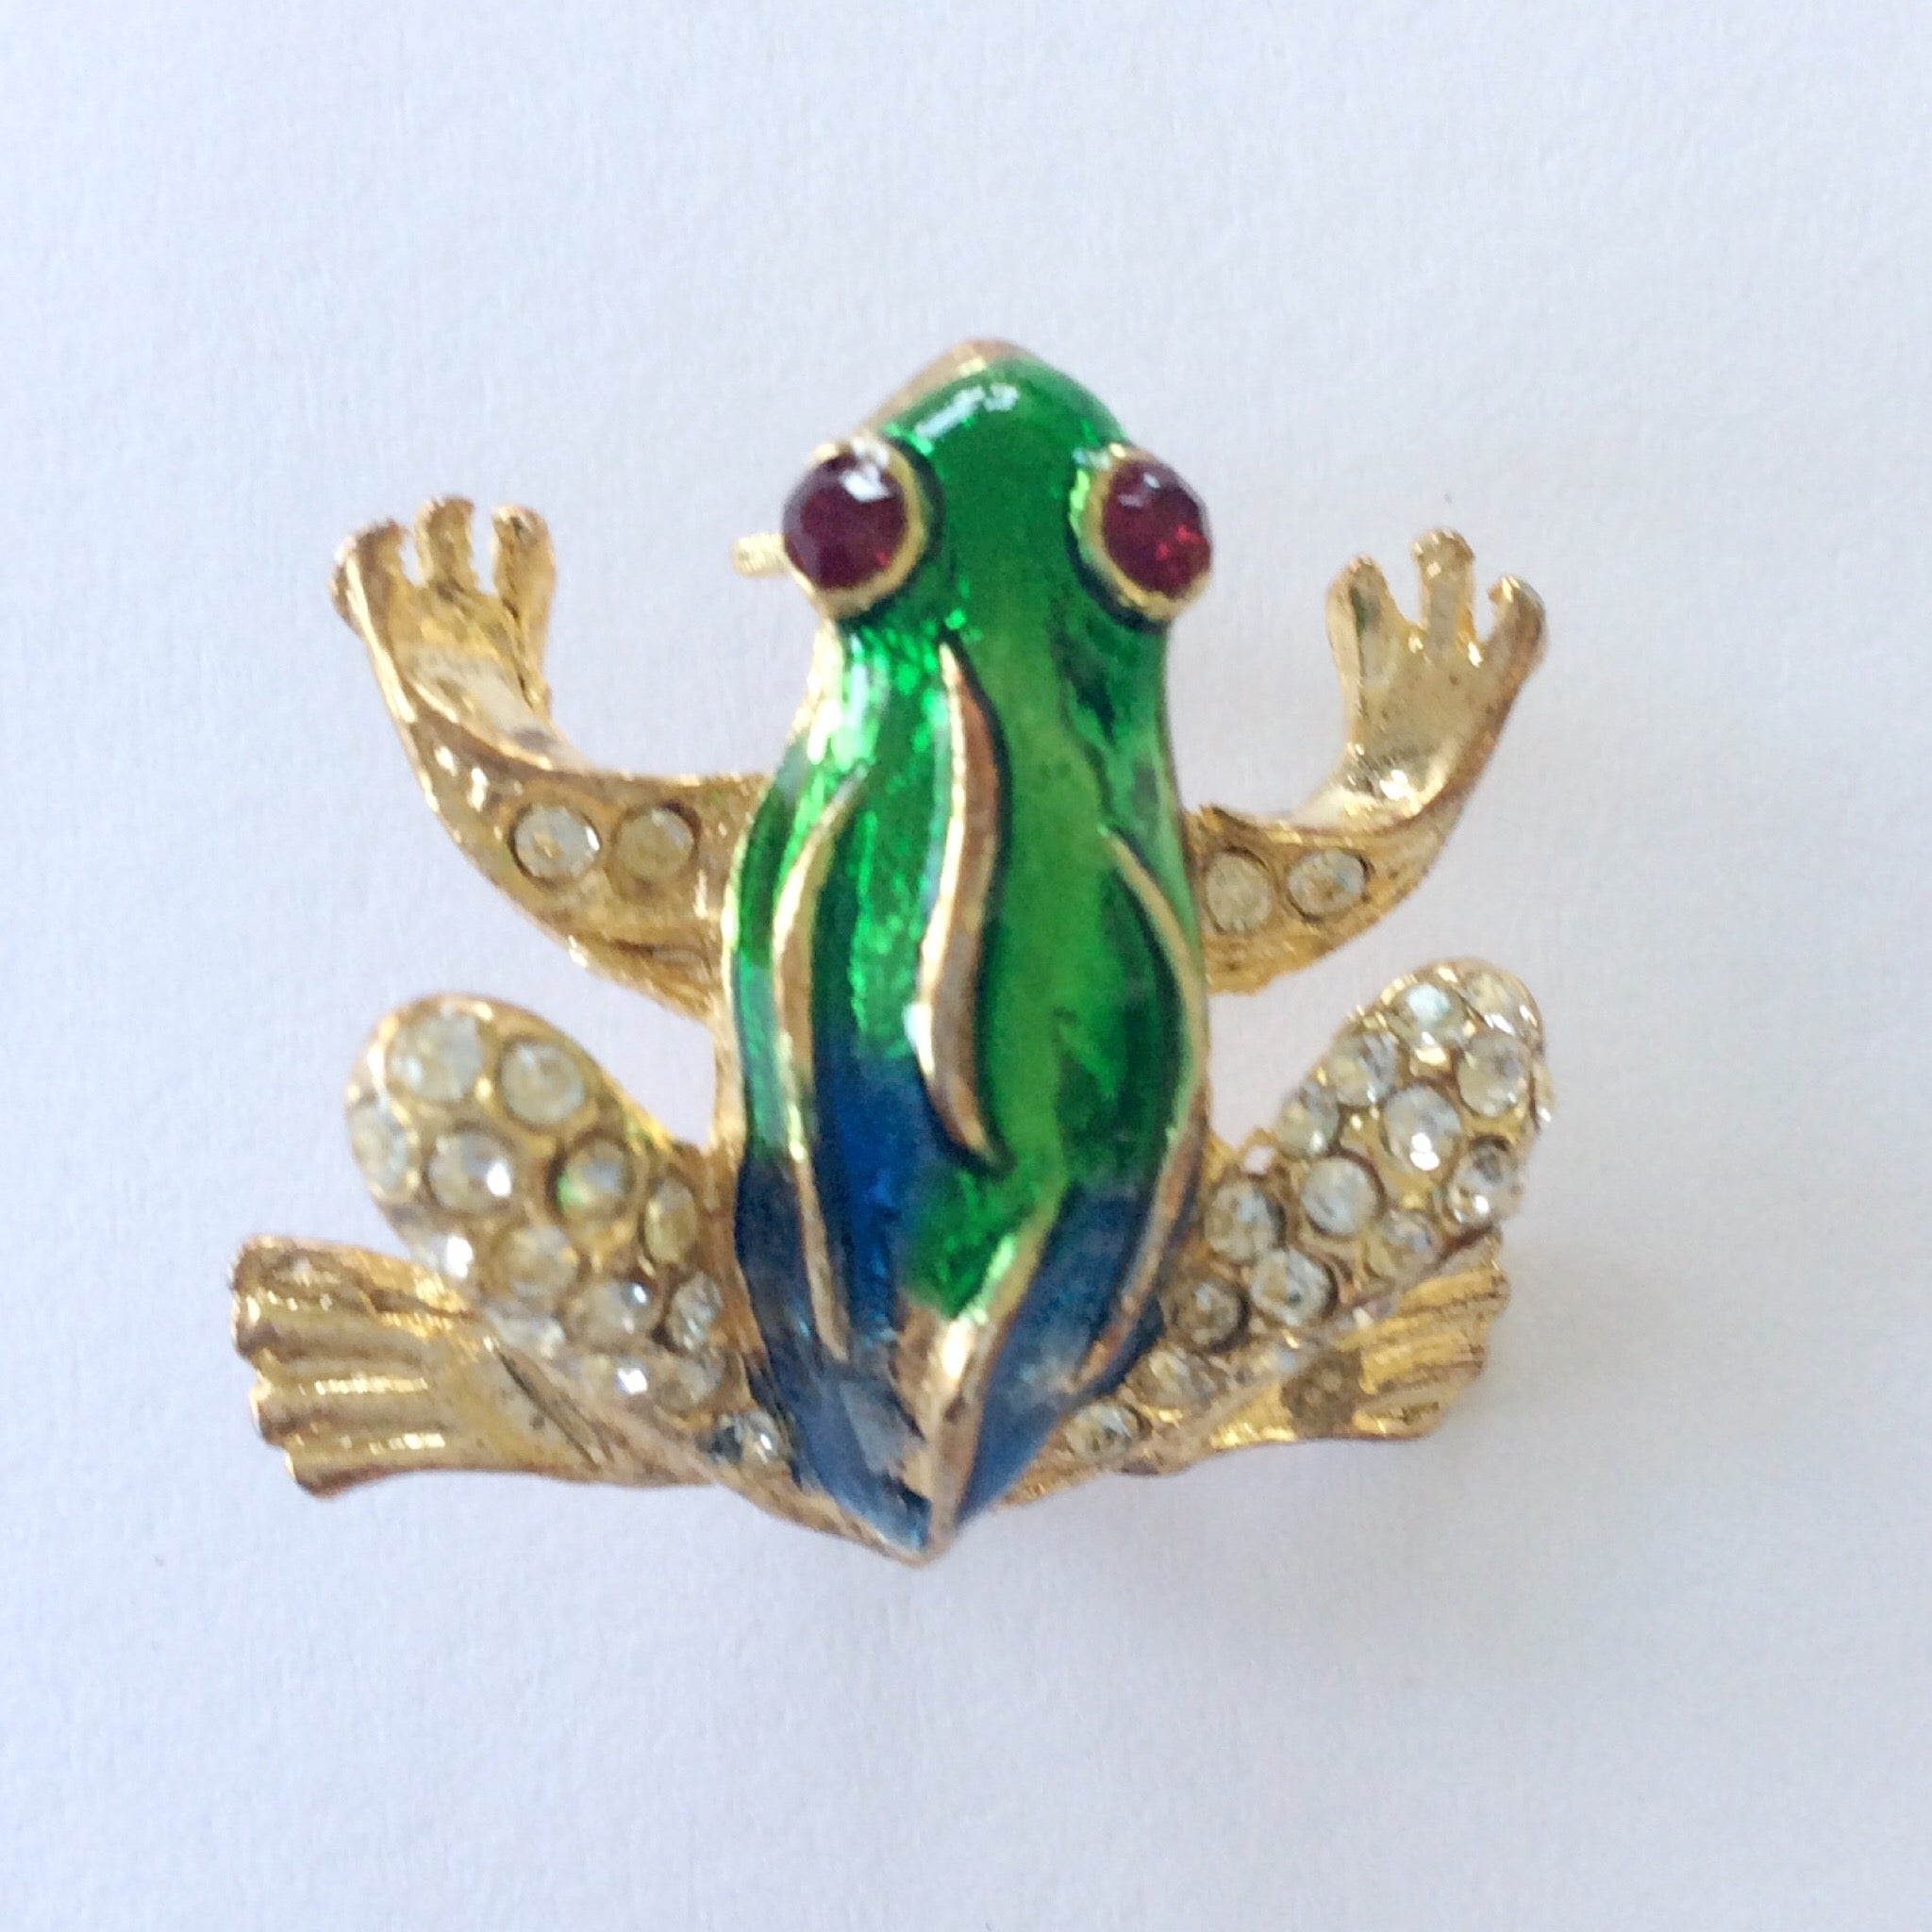 Vintage Rhinestone and Enamel Frog Pin